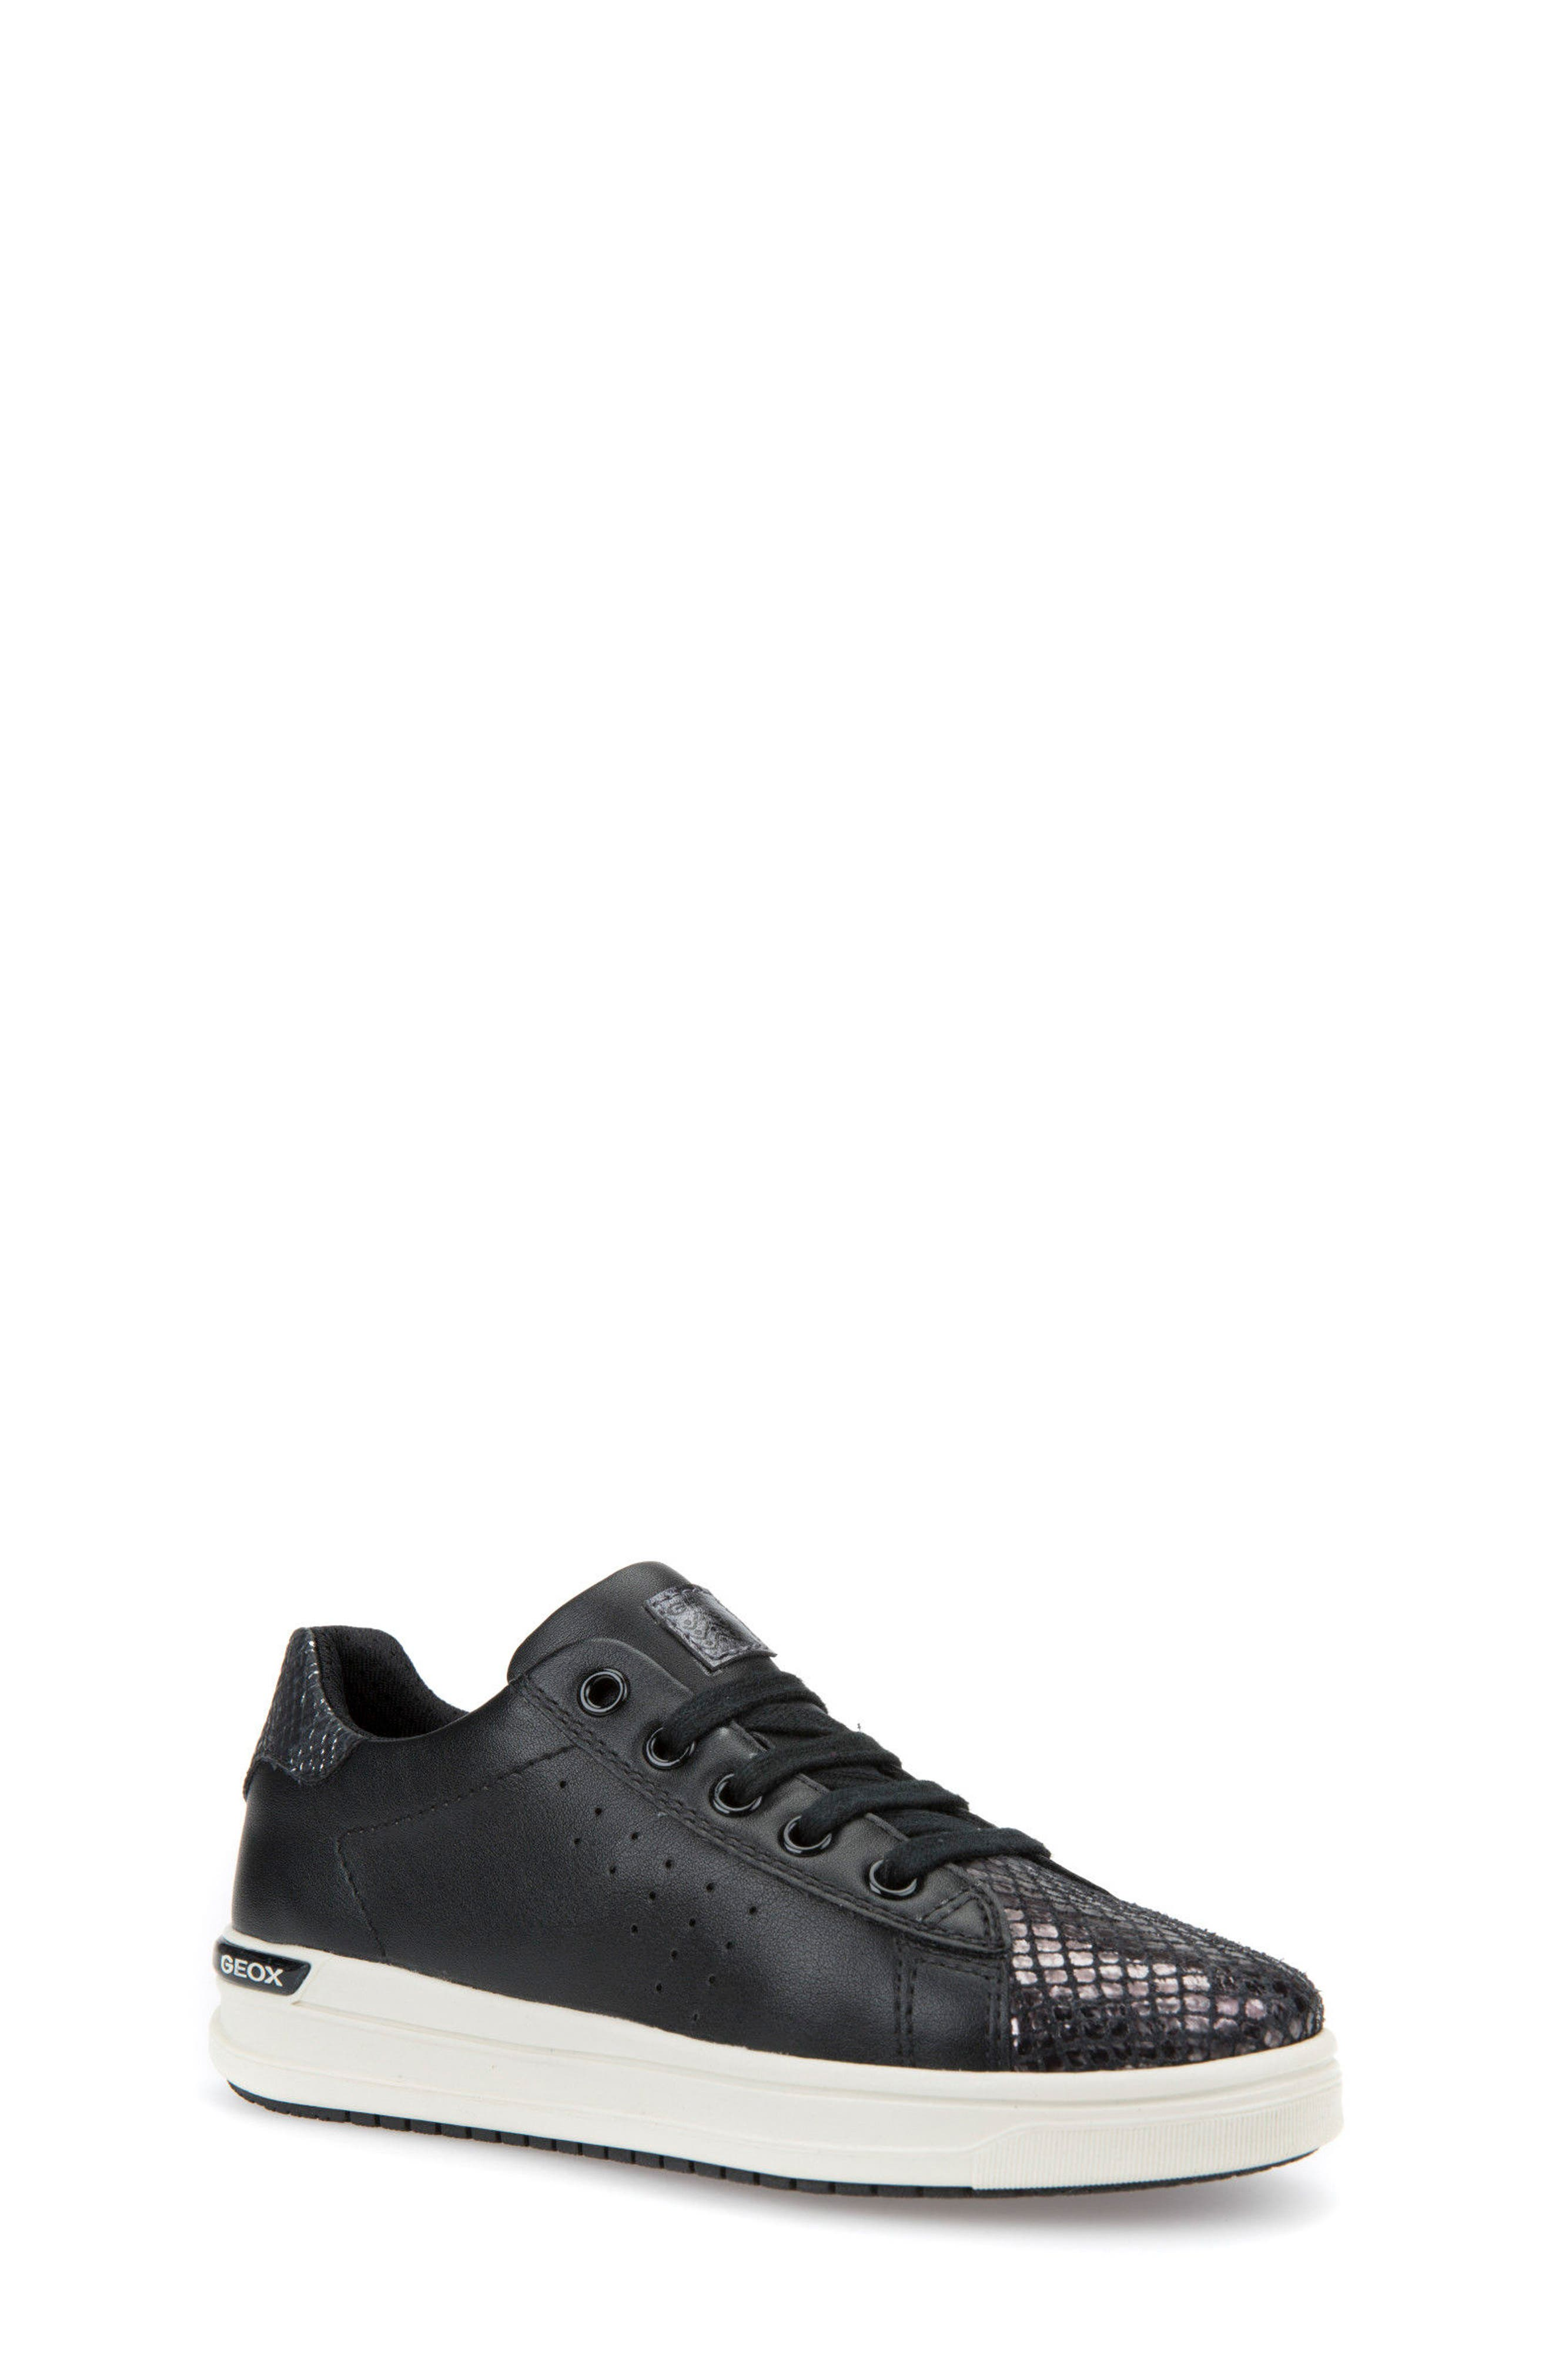 Cave Up Girl Low Top Sneaker,                         Main,                         color, 001